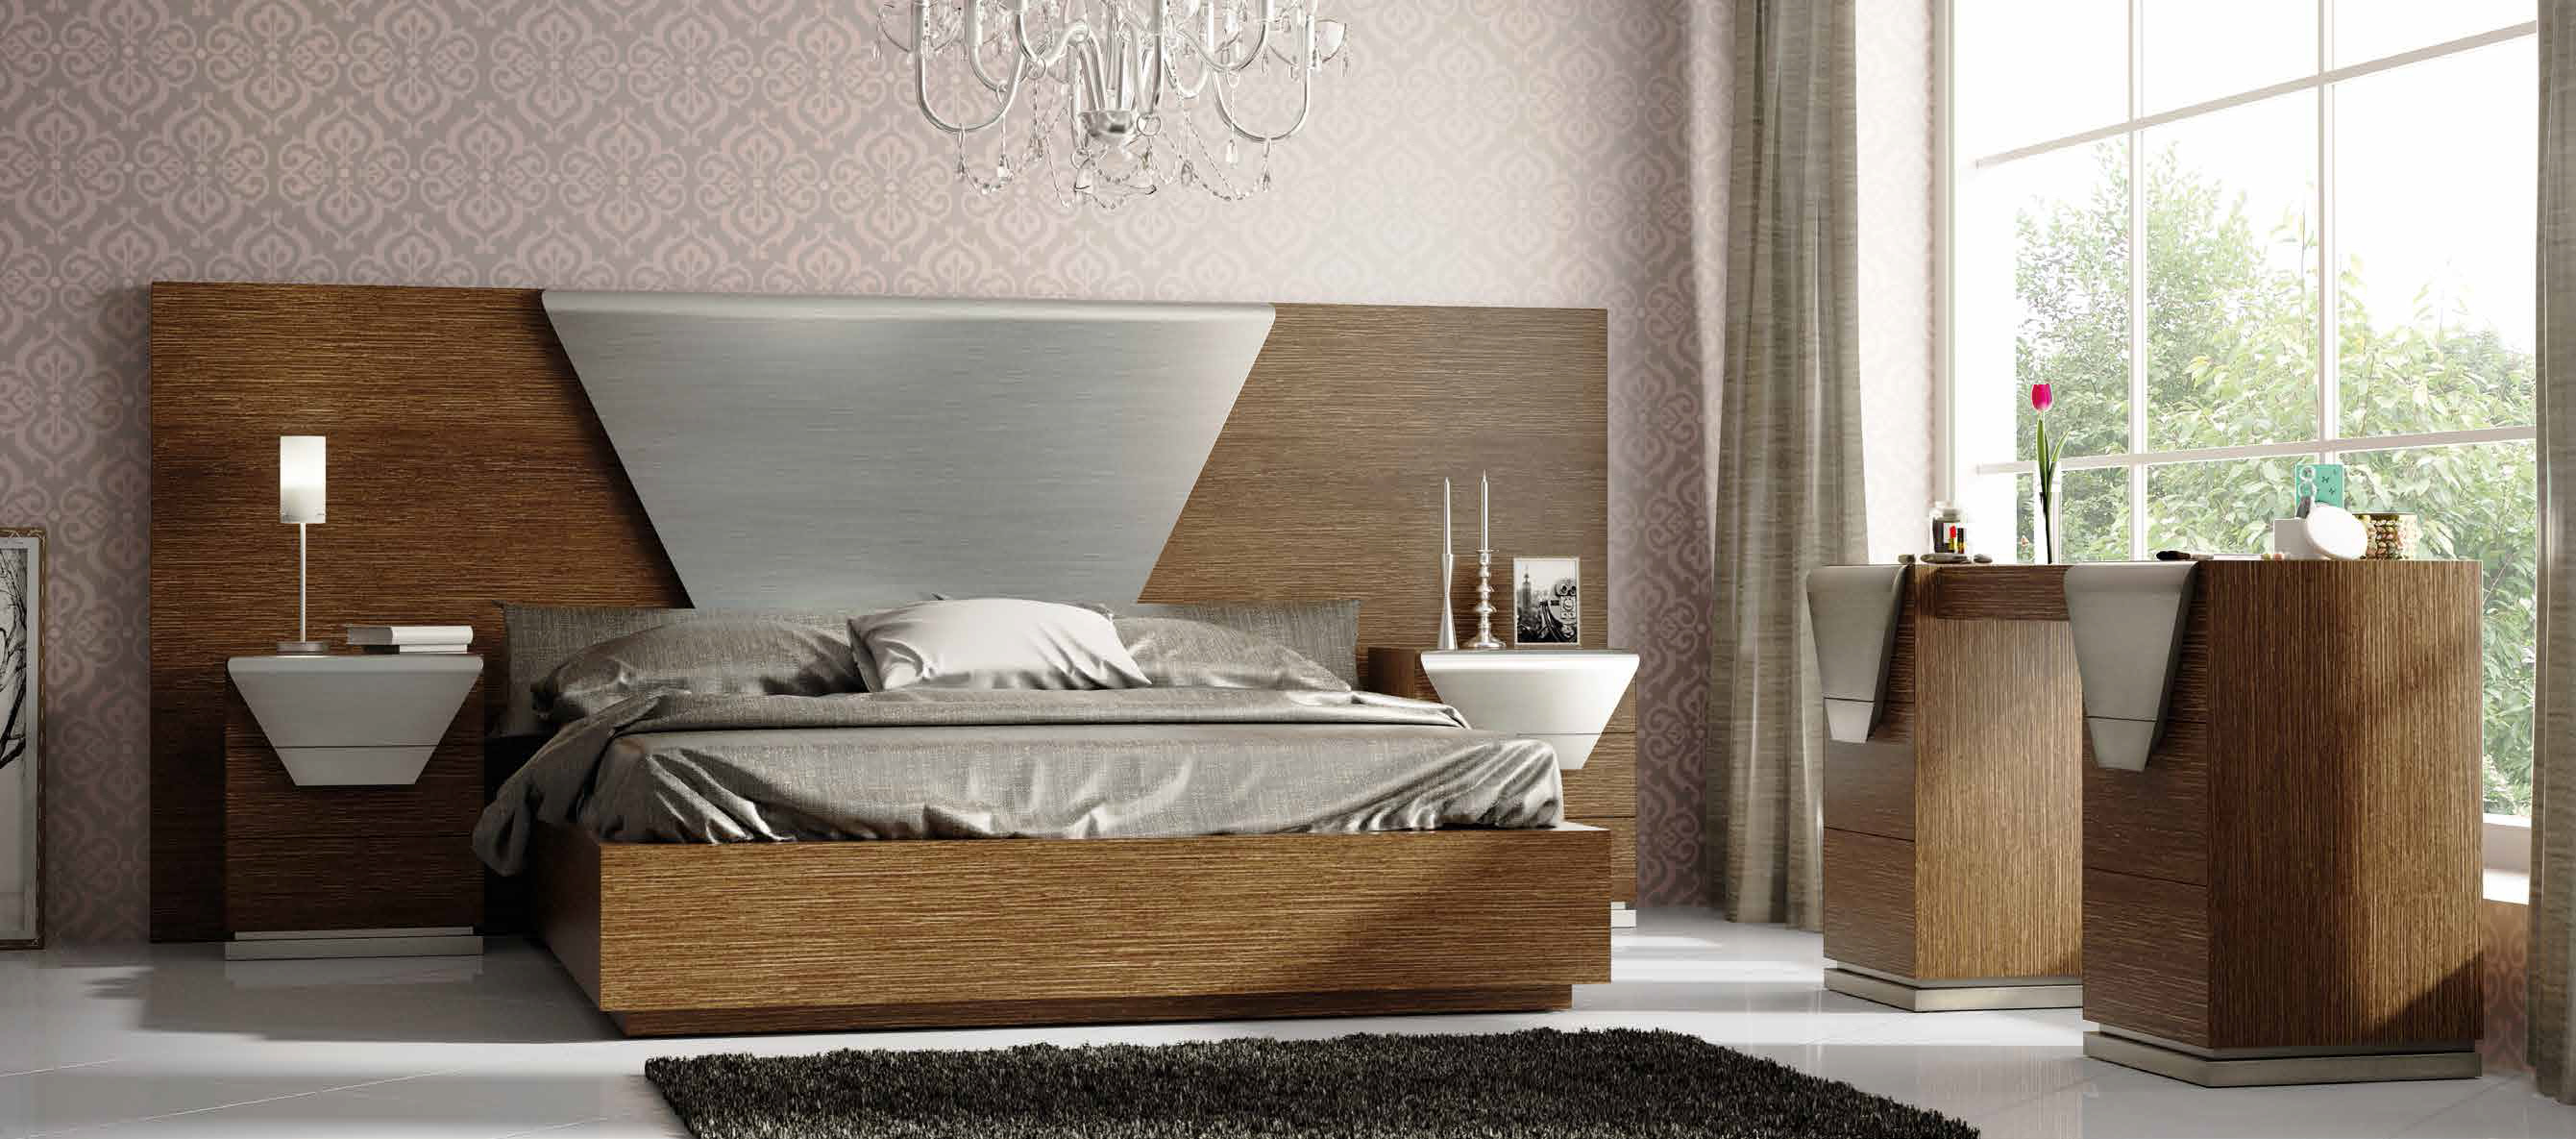 Brands Franco Furniture Bedrooms vol1, Spain DOR 86